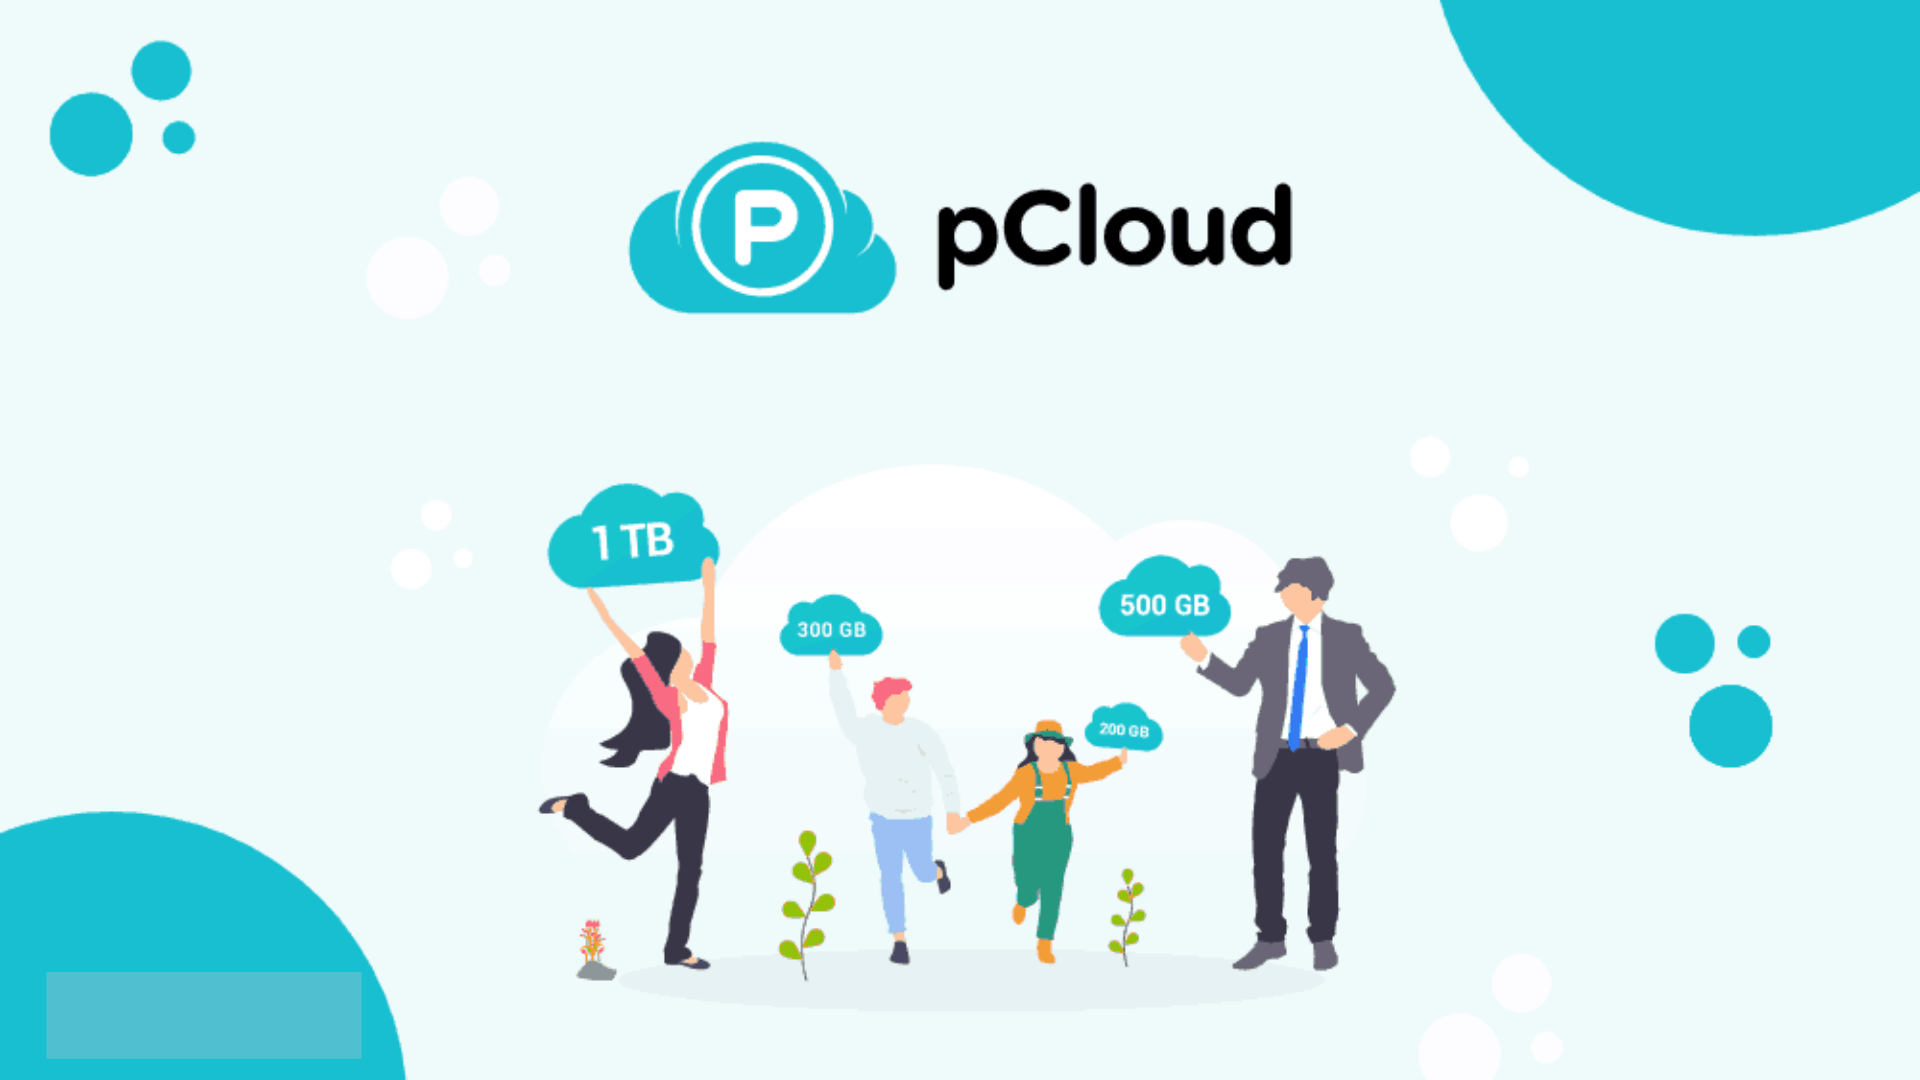 pCloud - Best Lifetime Cloud Storage - Starting from 150$